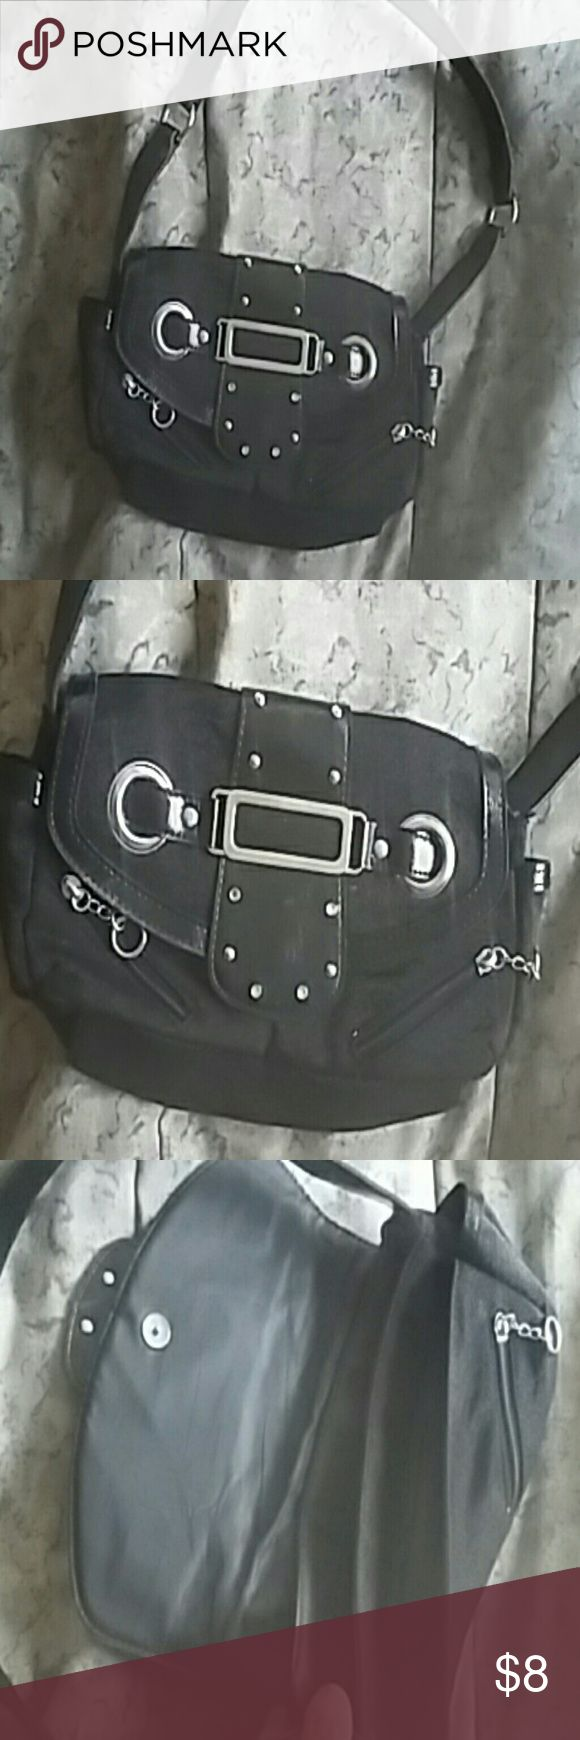 Black and silver purse Black shoulder bag,falls just under the shoulder with silver tone detail,10W,7L,strap 24 L around,snap closure Bags Shoulder Bags